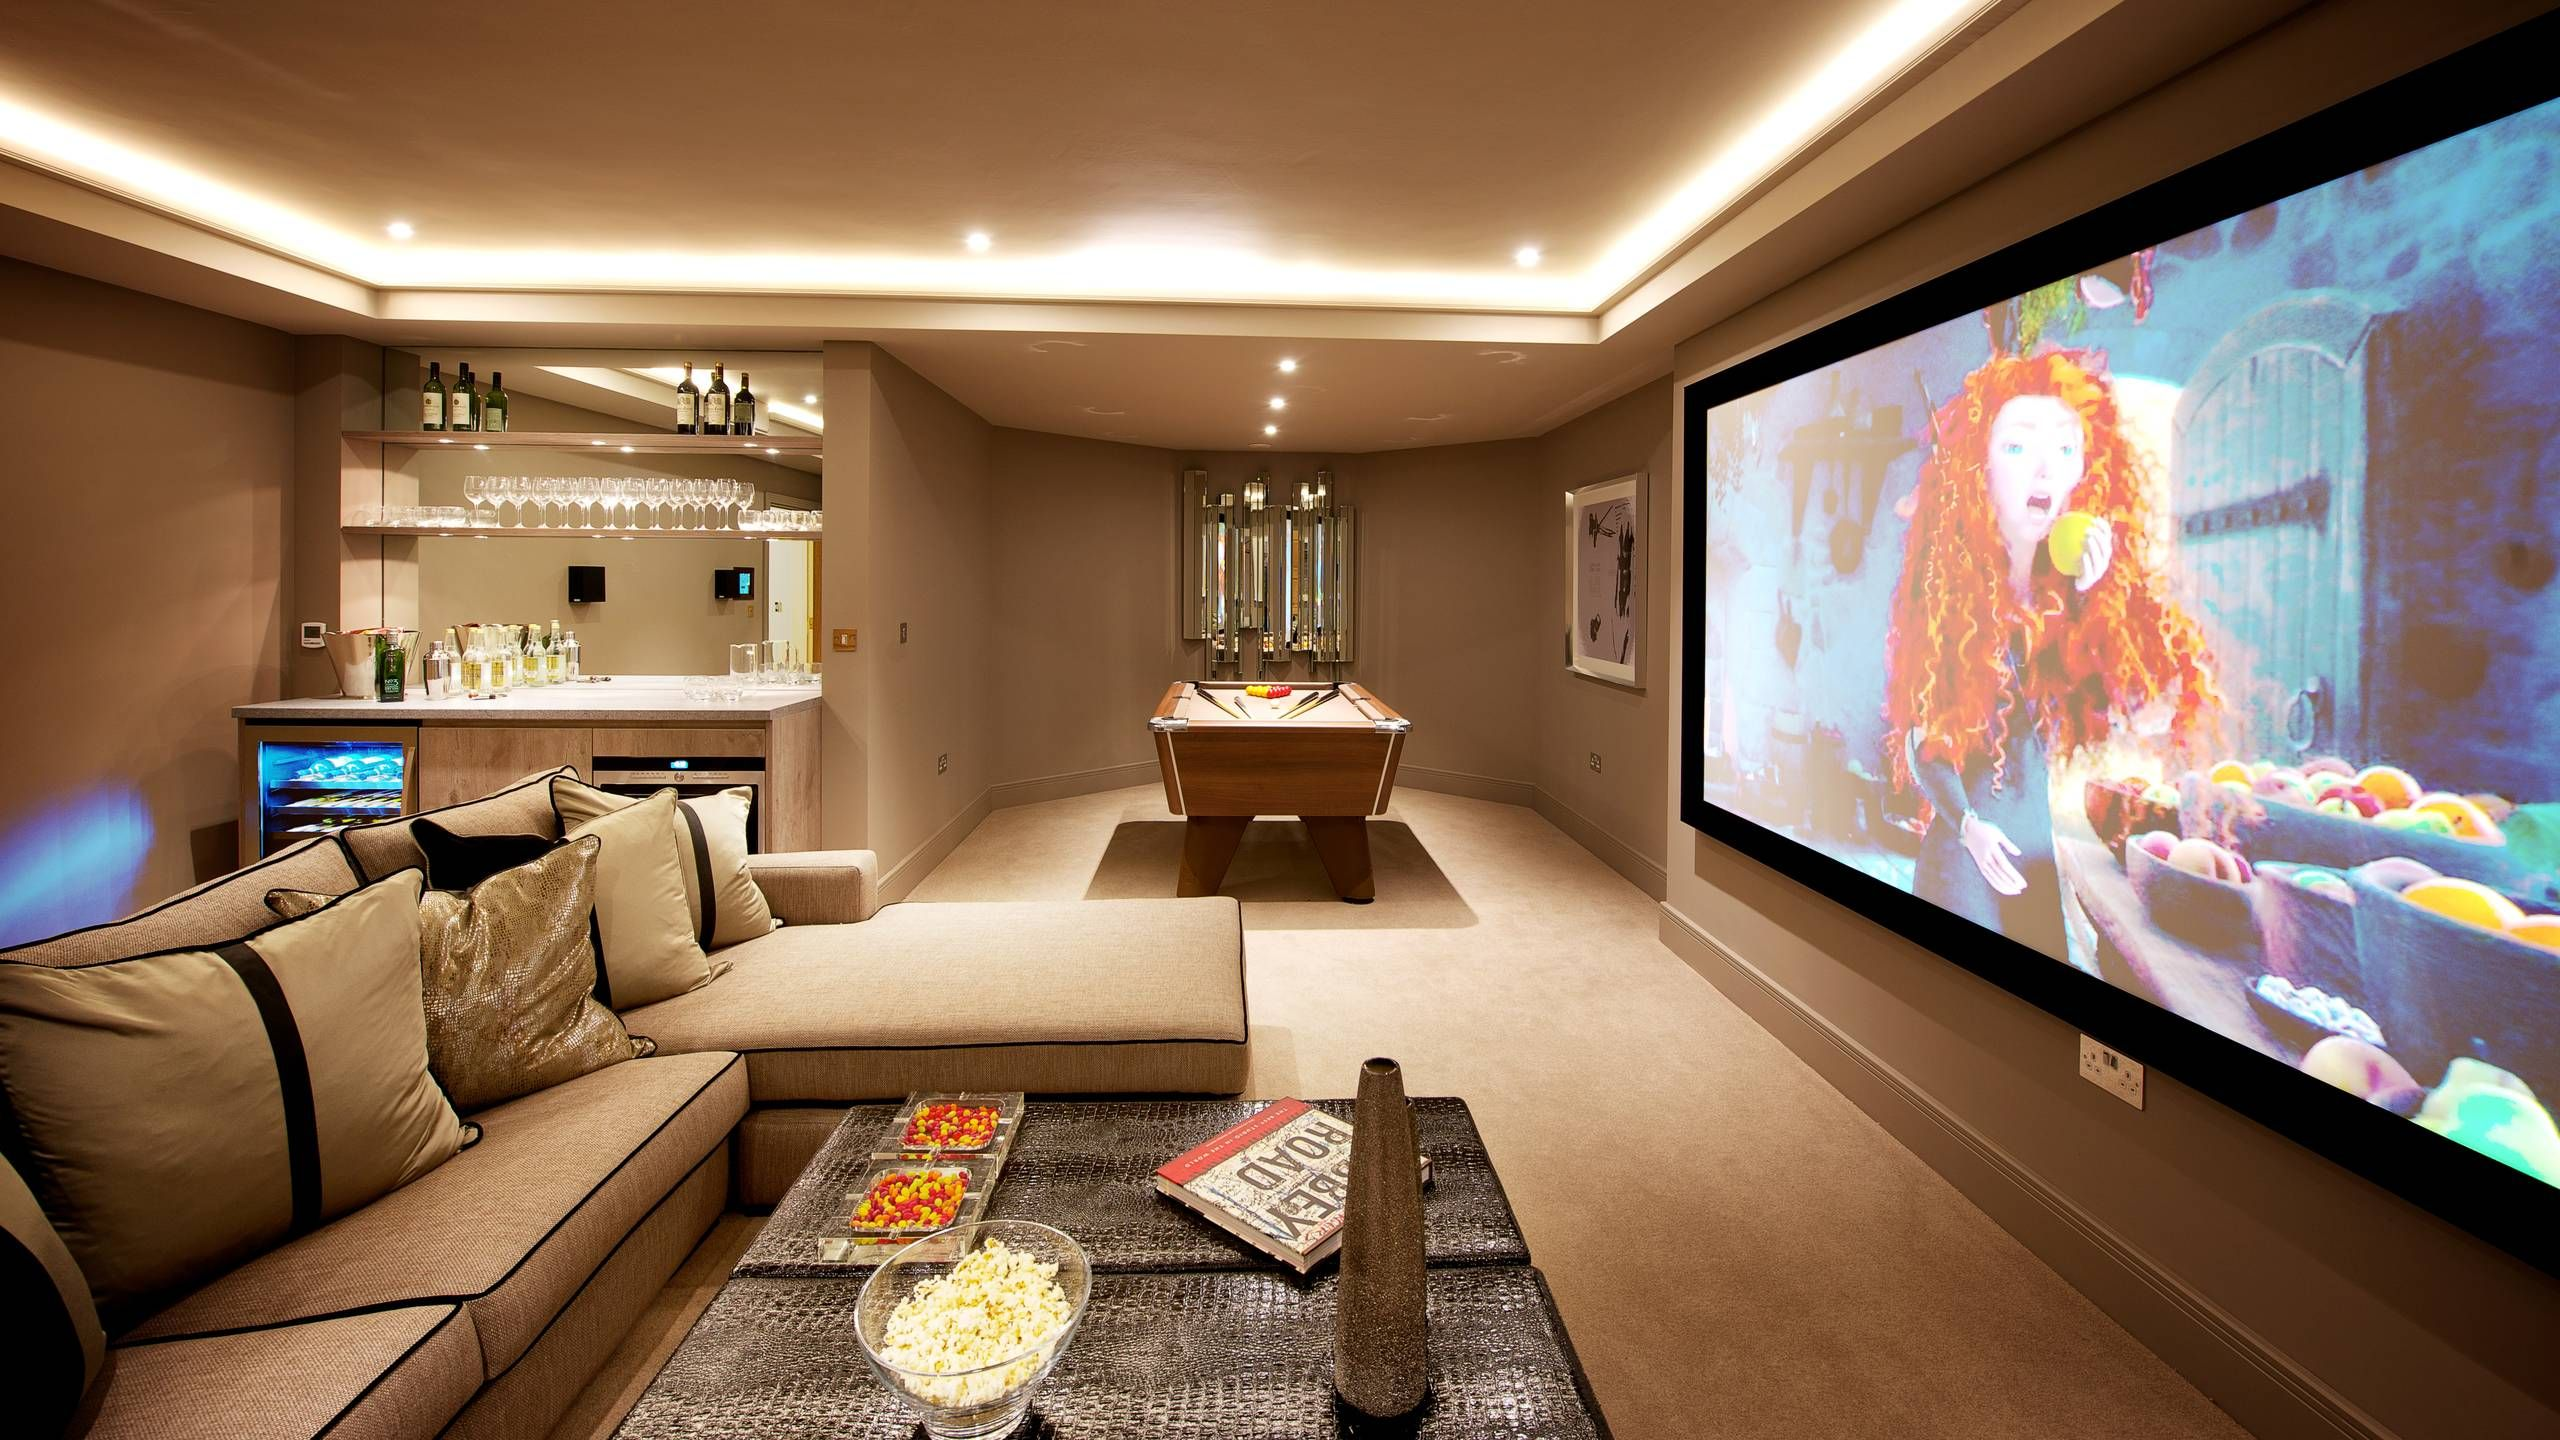 Family Game Room Ideas Part - 40: Basement Ideas. What A Basement!!! #Basement   Interior Design Ideas    Pinterest   Basements, Men Cave And Game Rooms